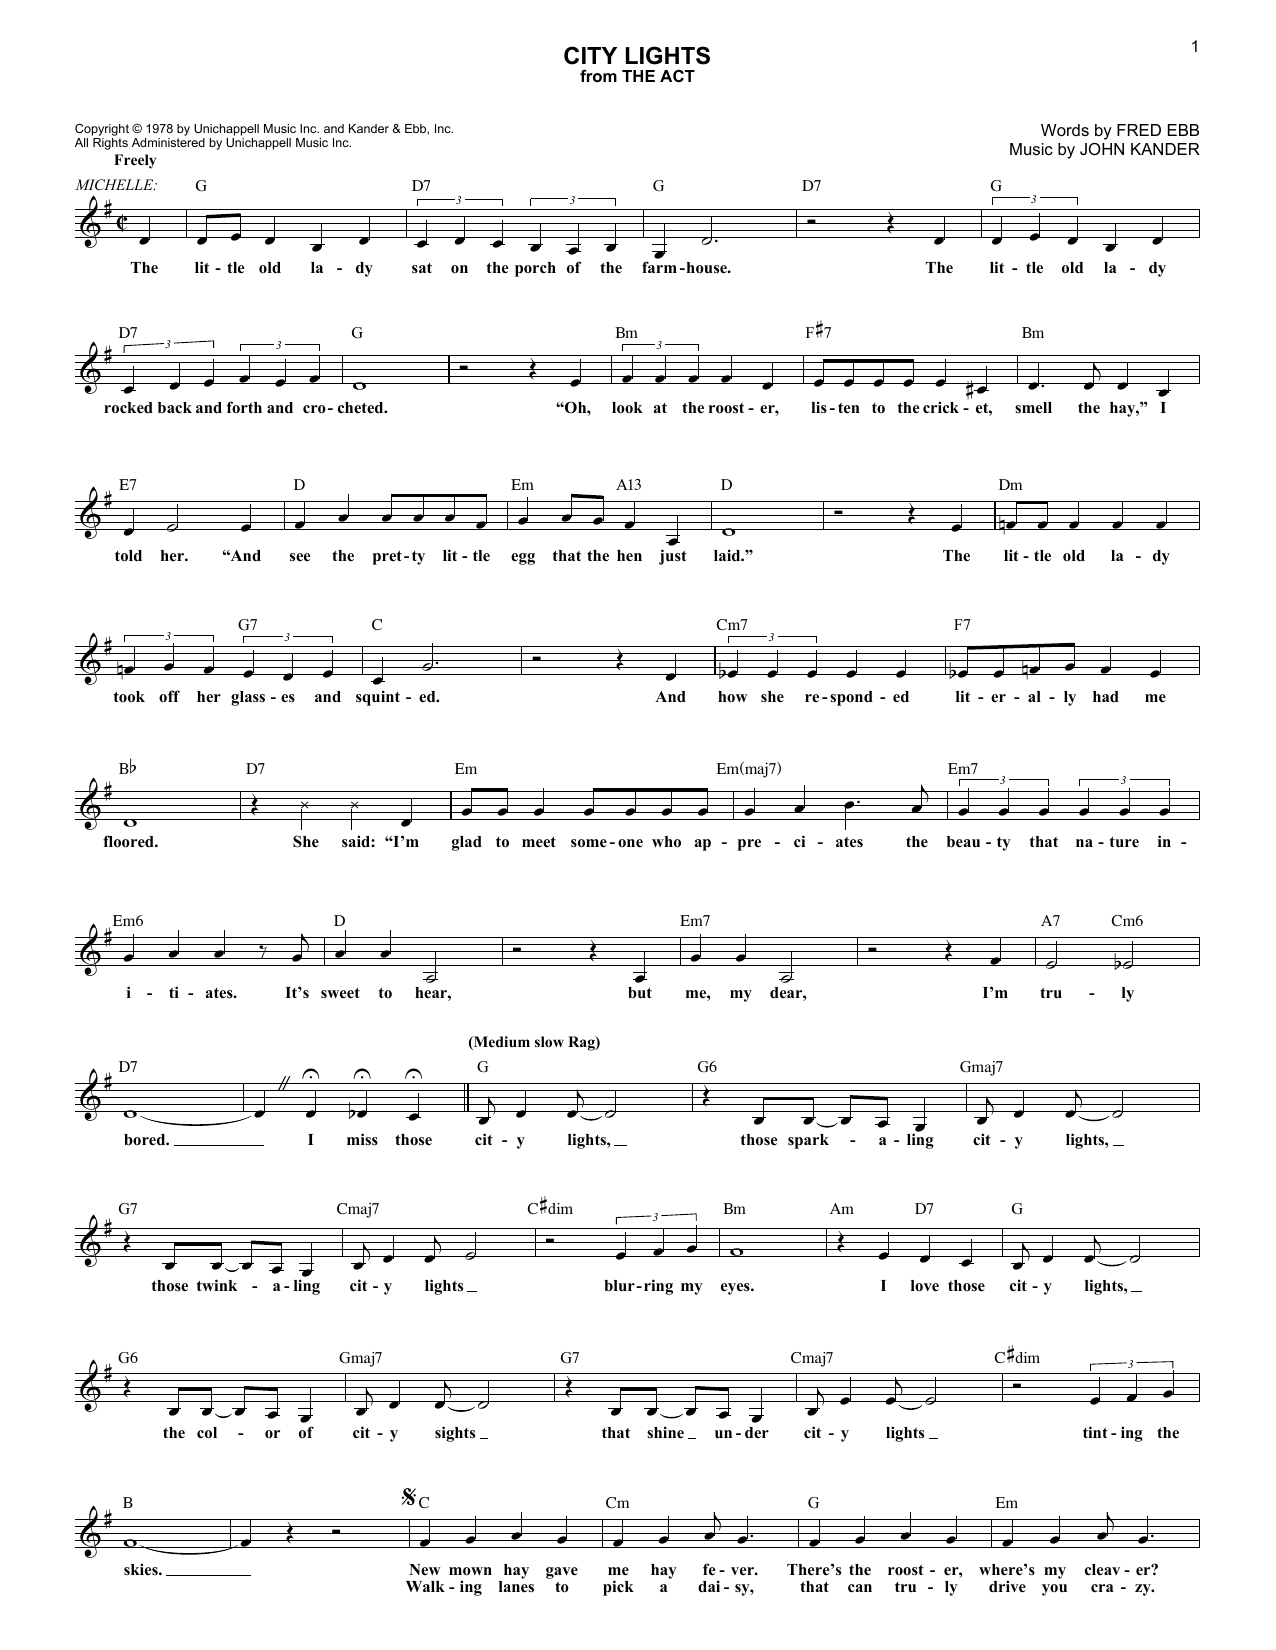 City Lights Sheet Music Kander Ebb Melody Line Lyrics Chords